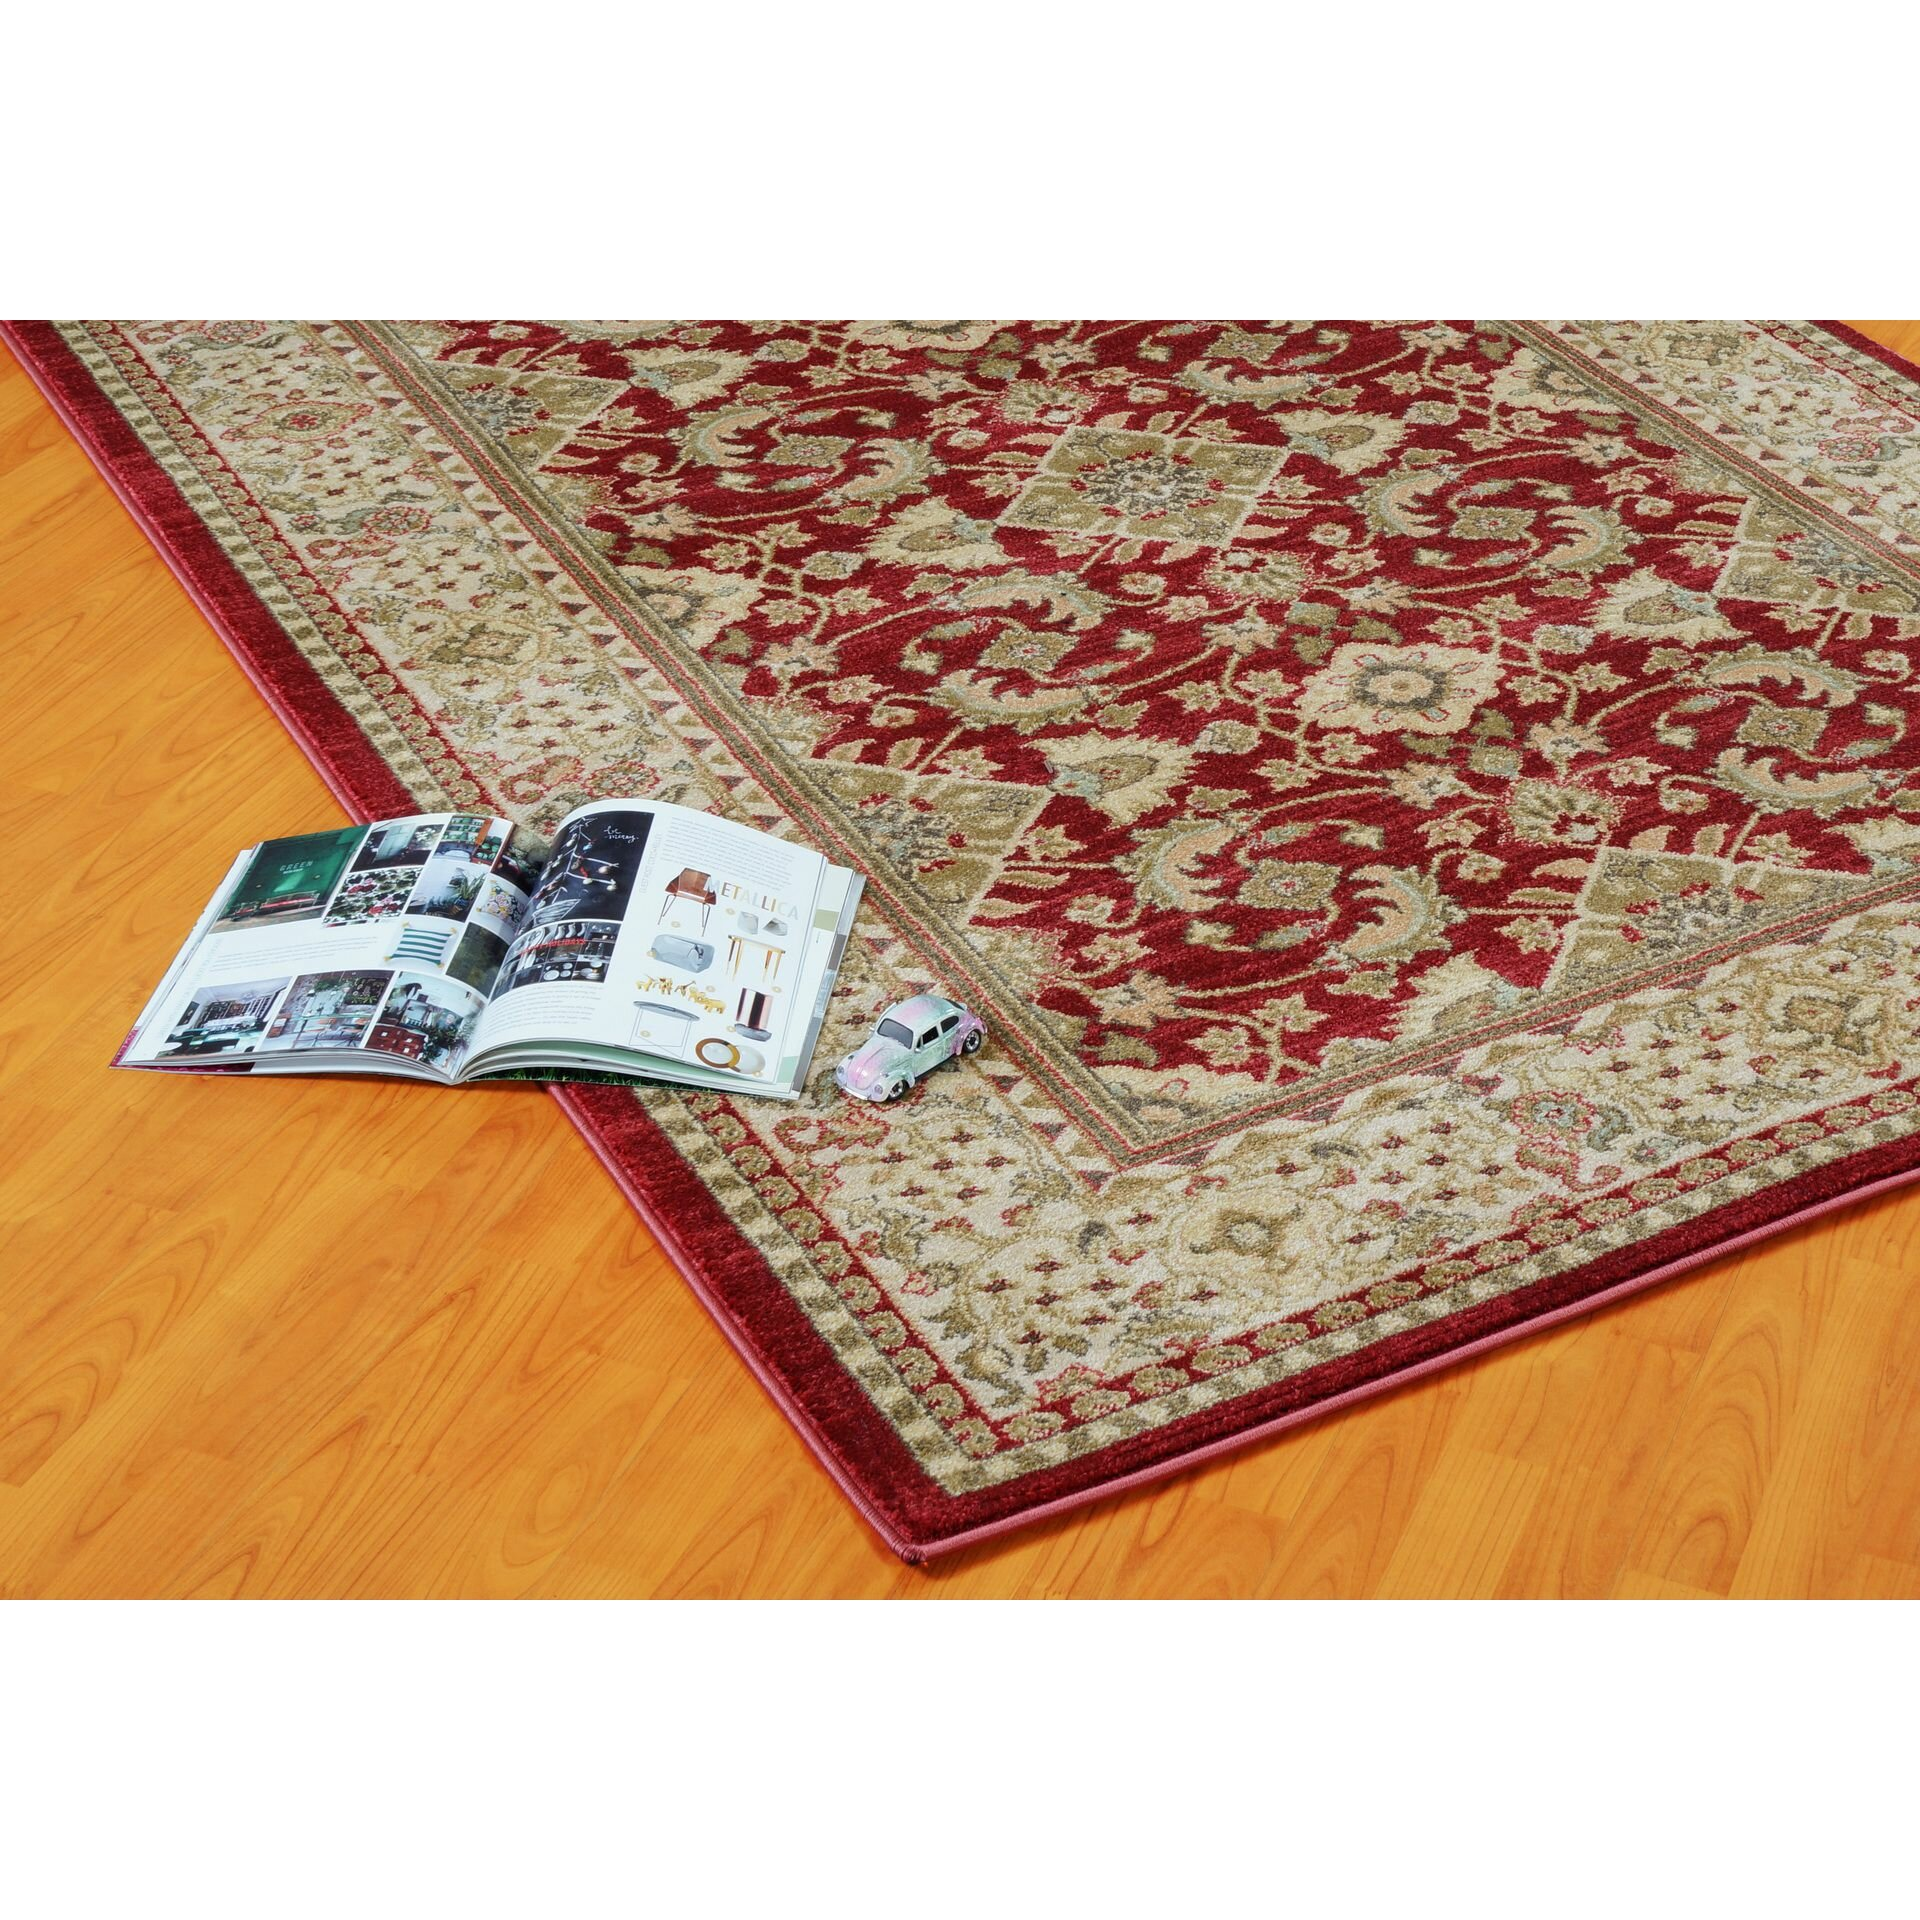 La dole rugs terra red cream area rug for Cream and red rugs